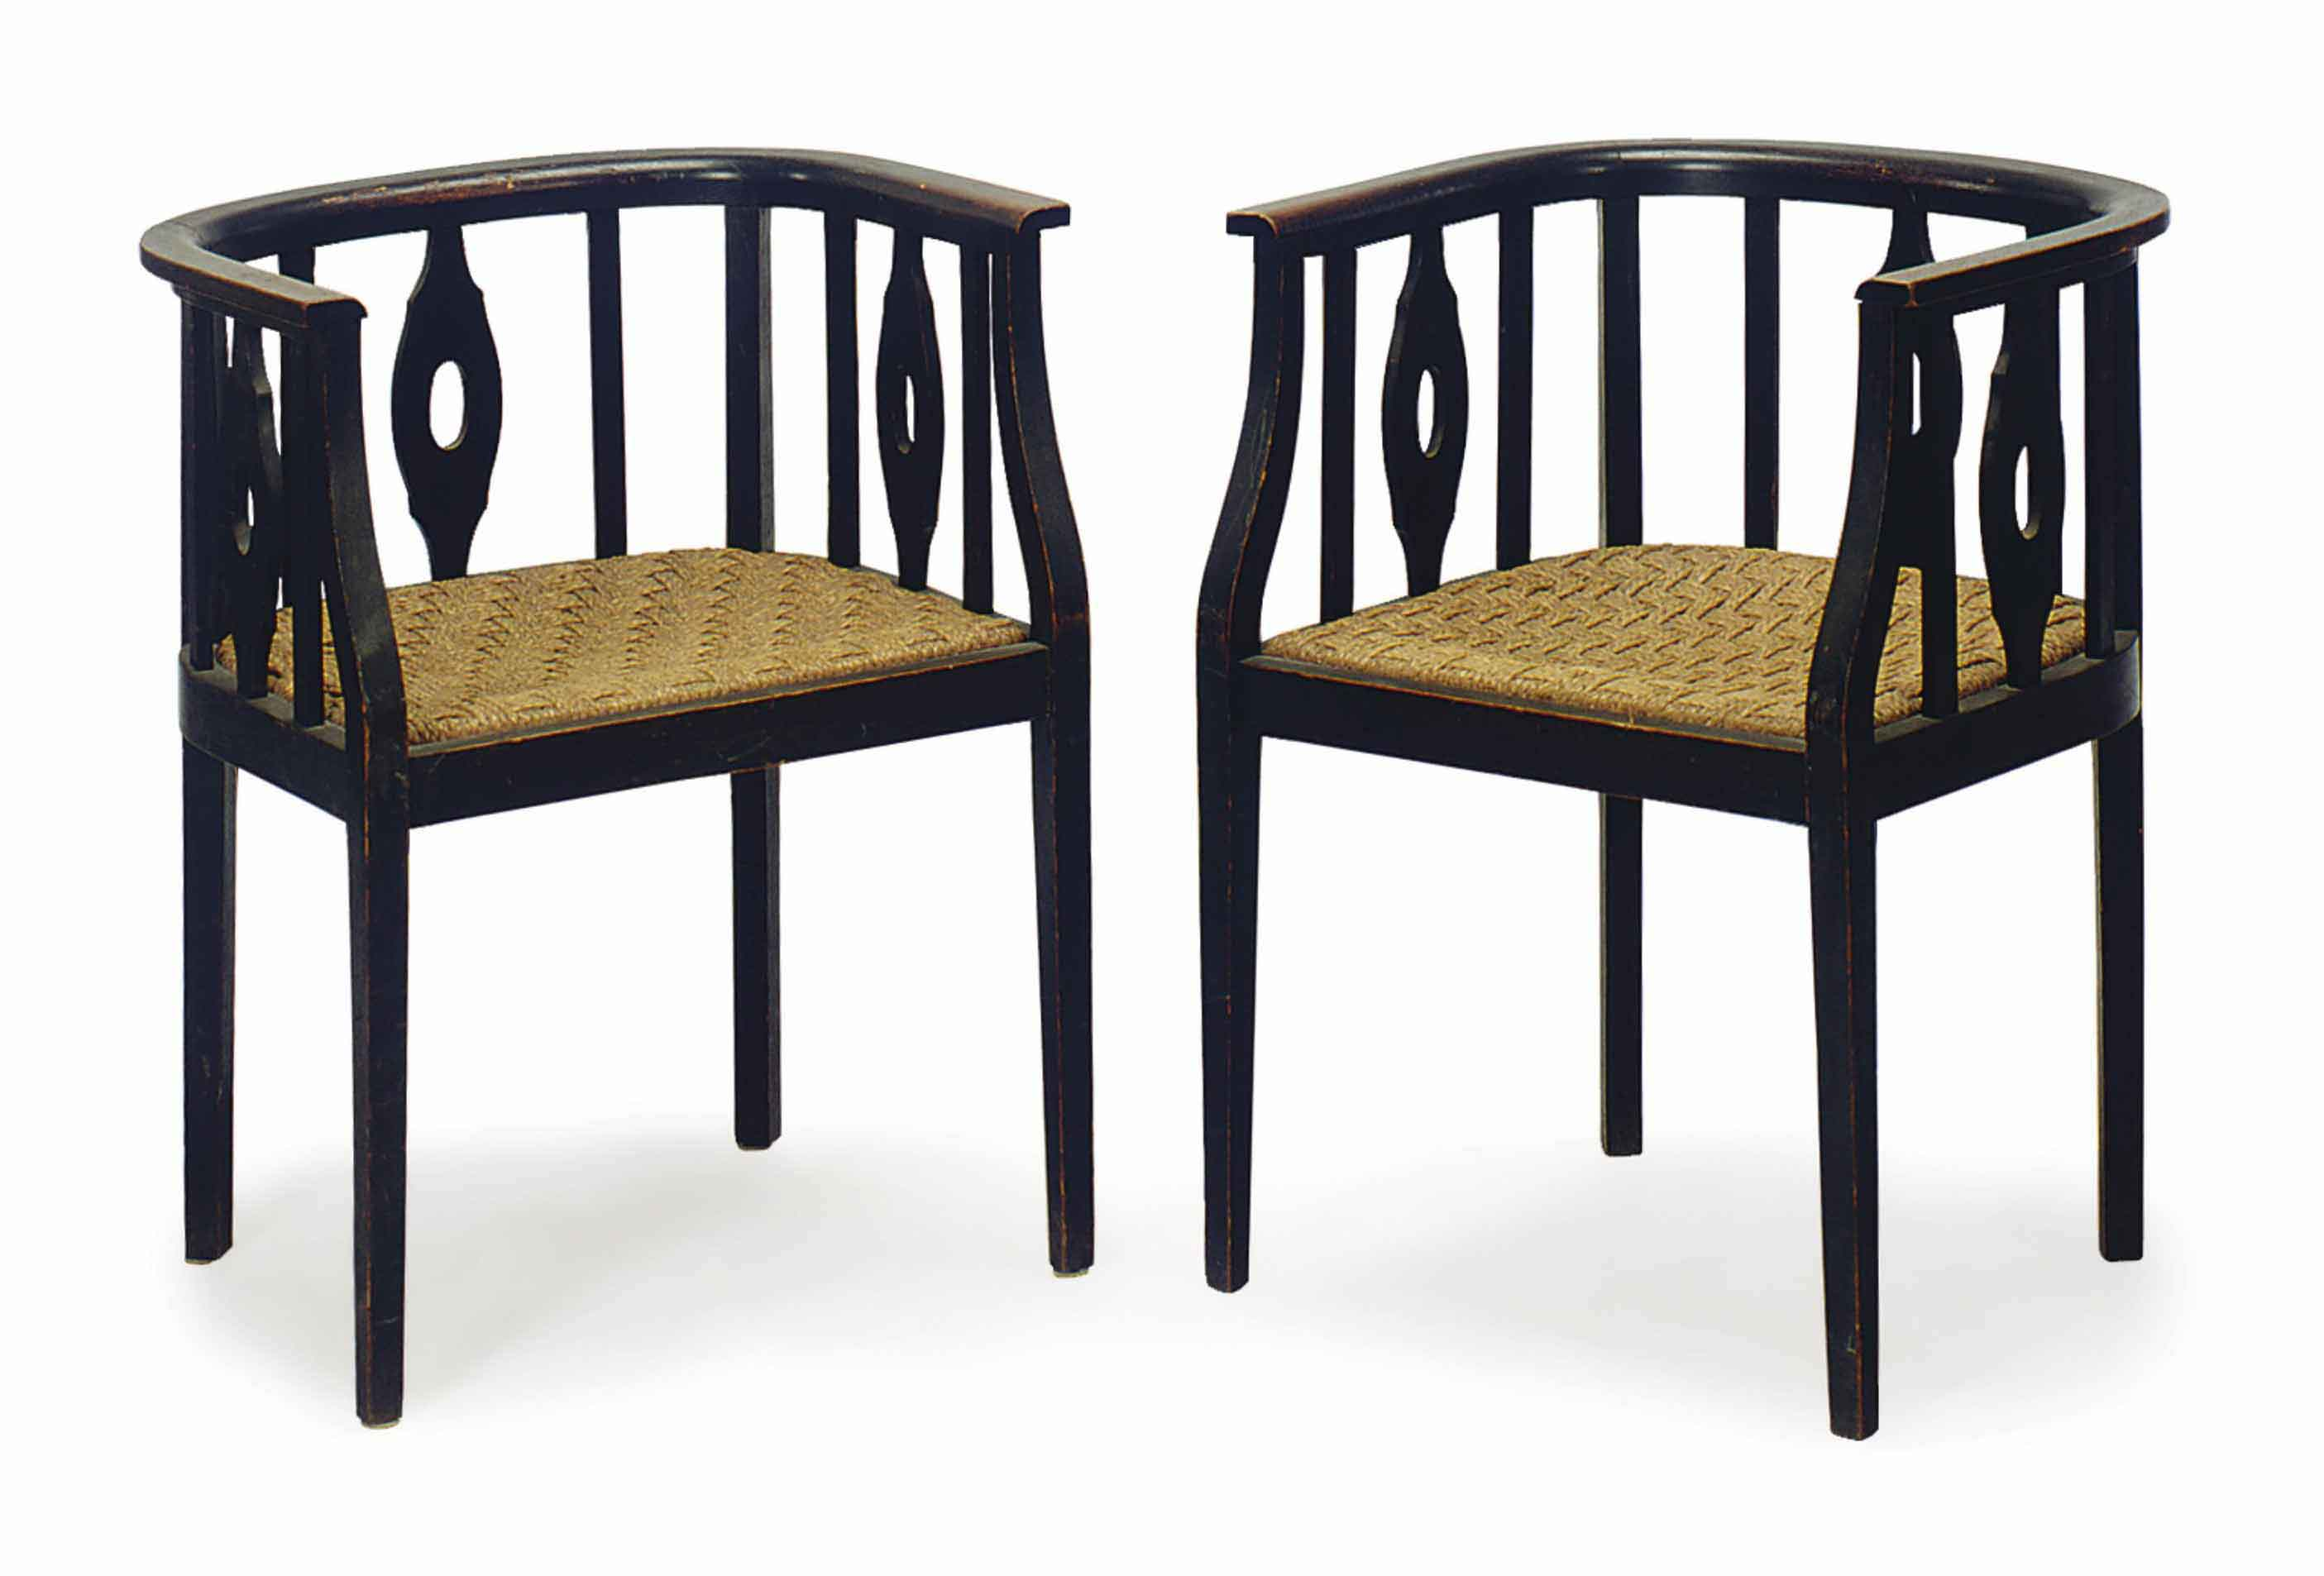 A PAIR OF CONTINENTAL EBONIZED AND WOVEN ROPE-SEAT BARRELBACK ARMCHAIRS,